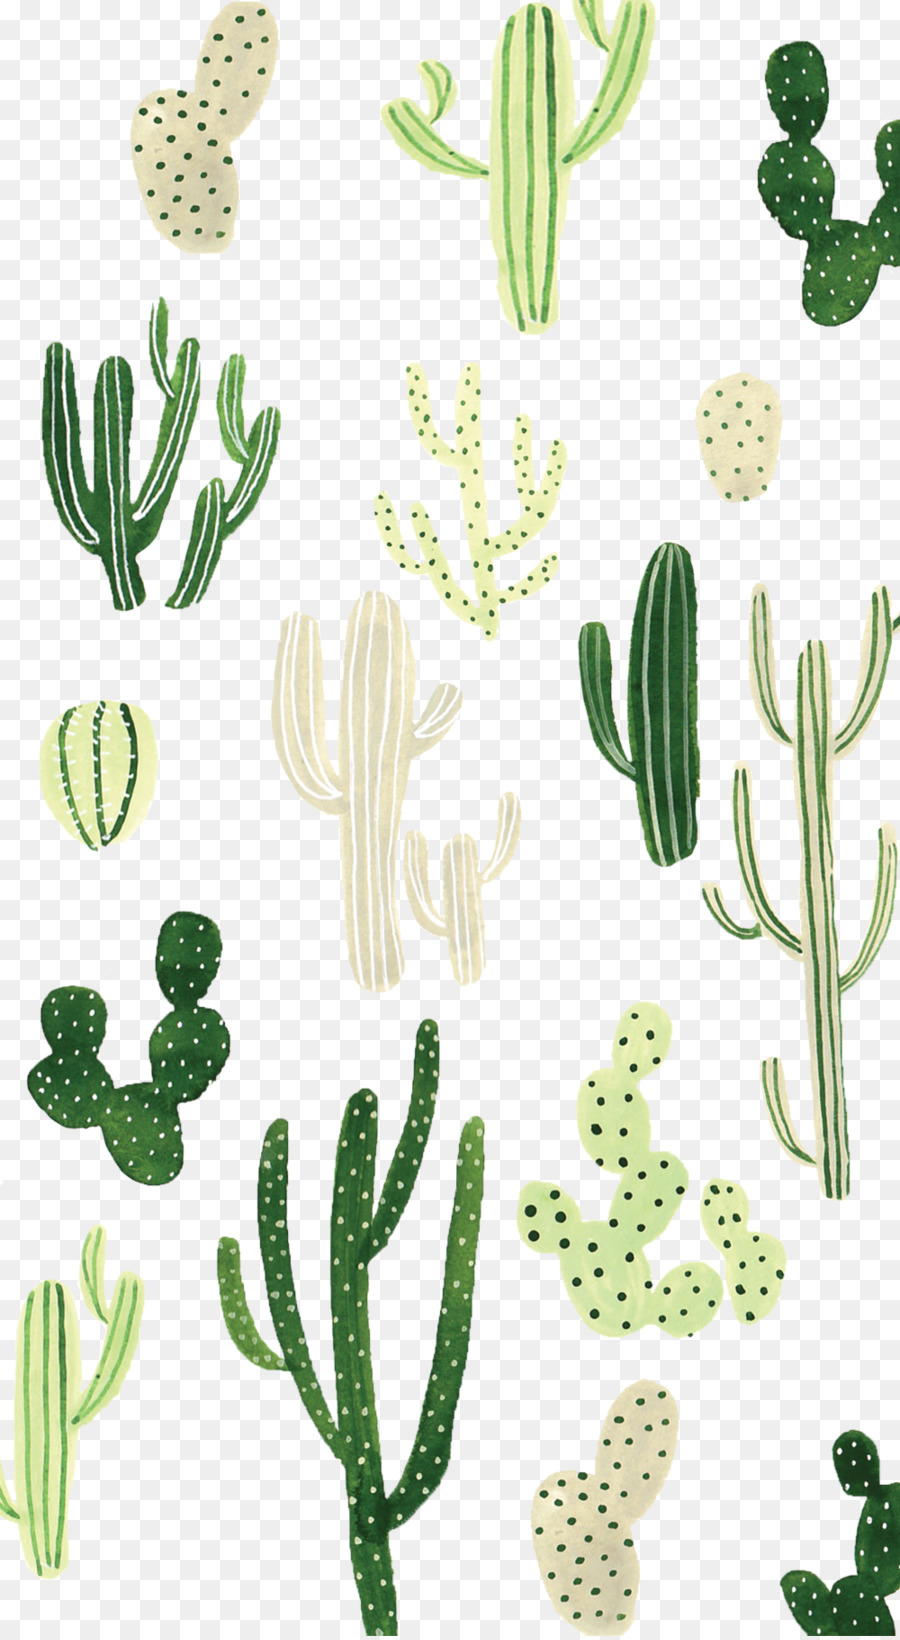 Desktop Wallpaper Cactaceae Iphone Wallpaper Watercolor Cactus Png